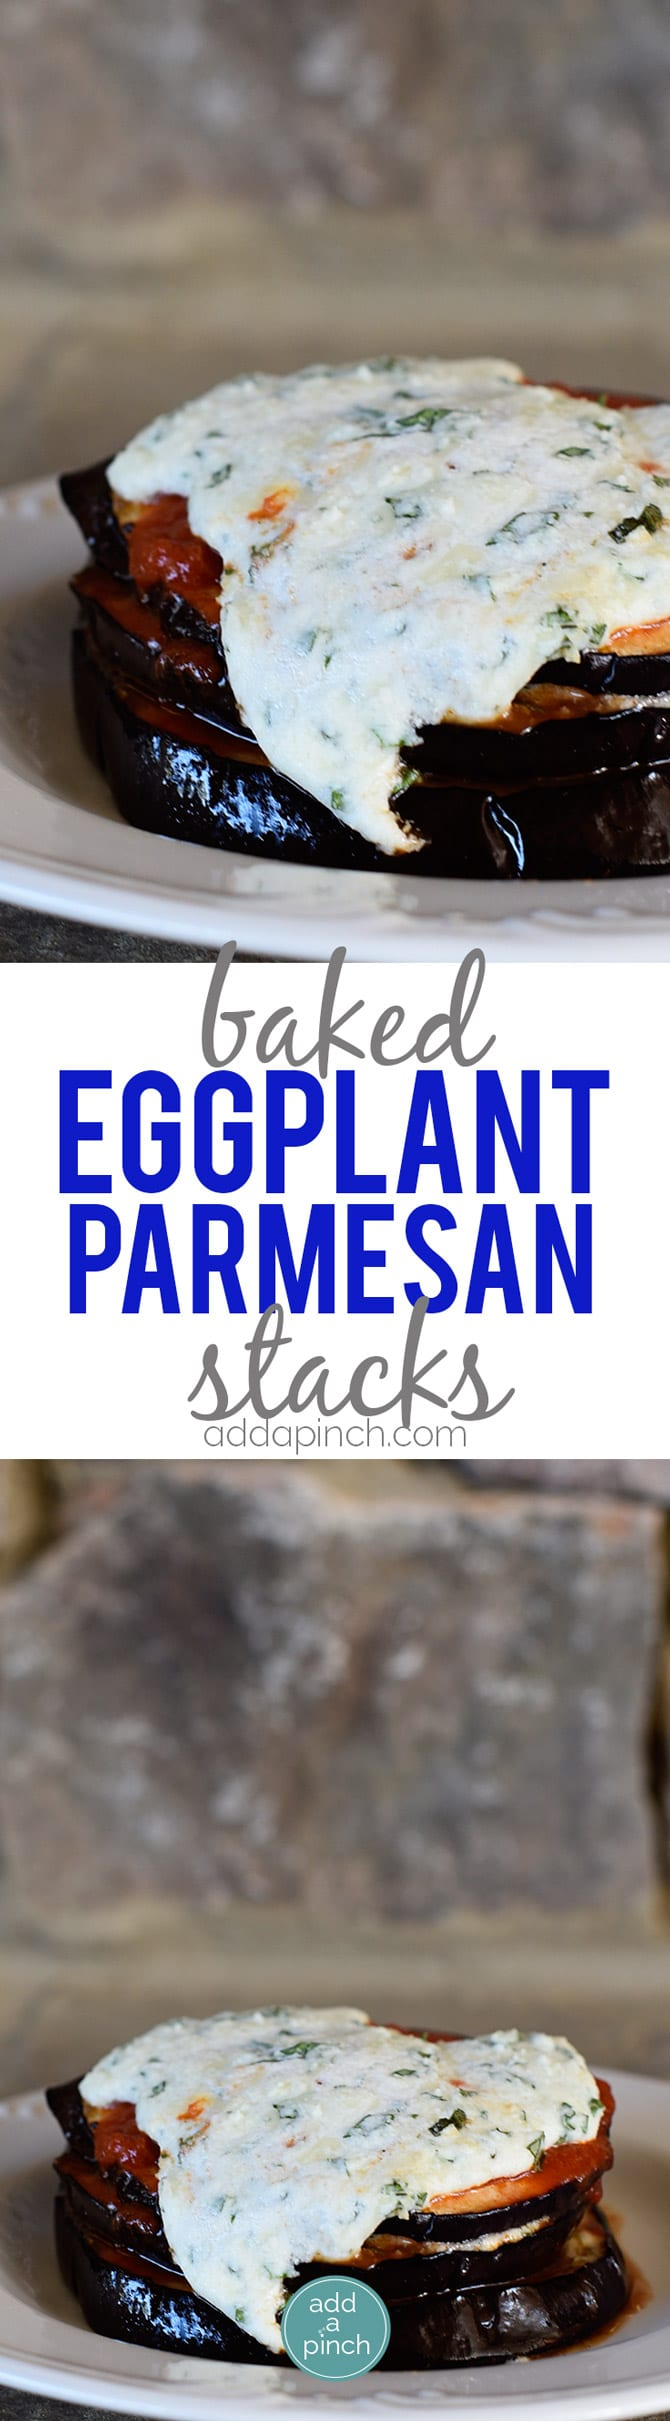 eggplant parmesan and utilizing the recipe